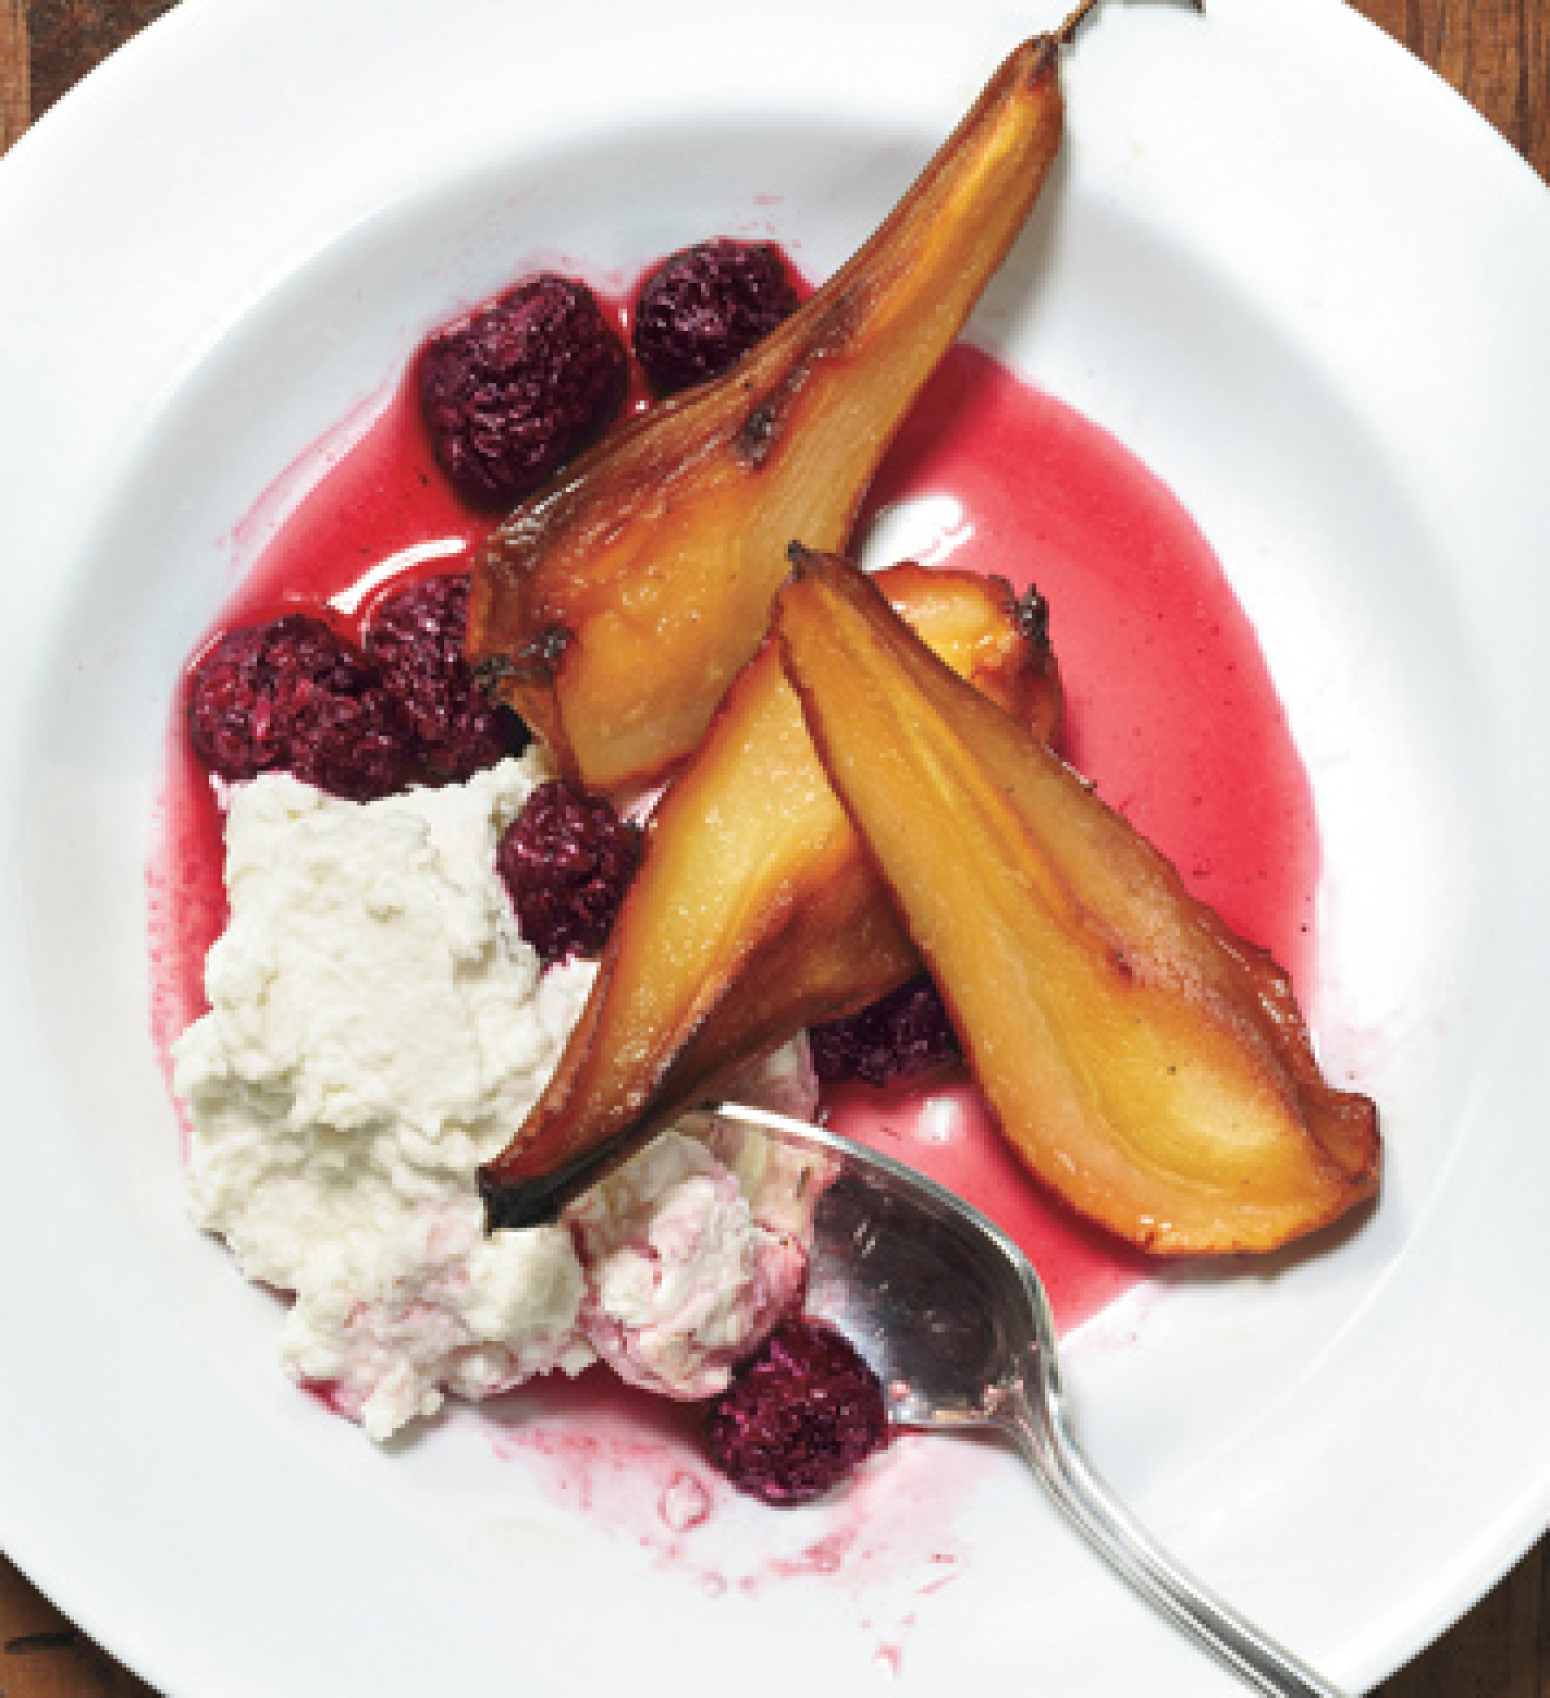 Roasted Pears With Blackberries Ricotta And Lavender Sugar